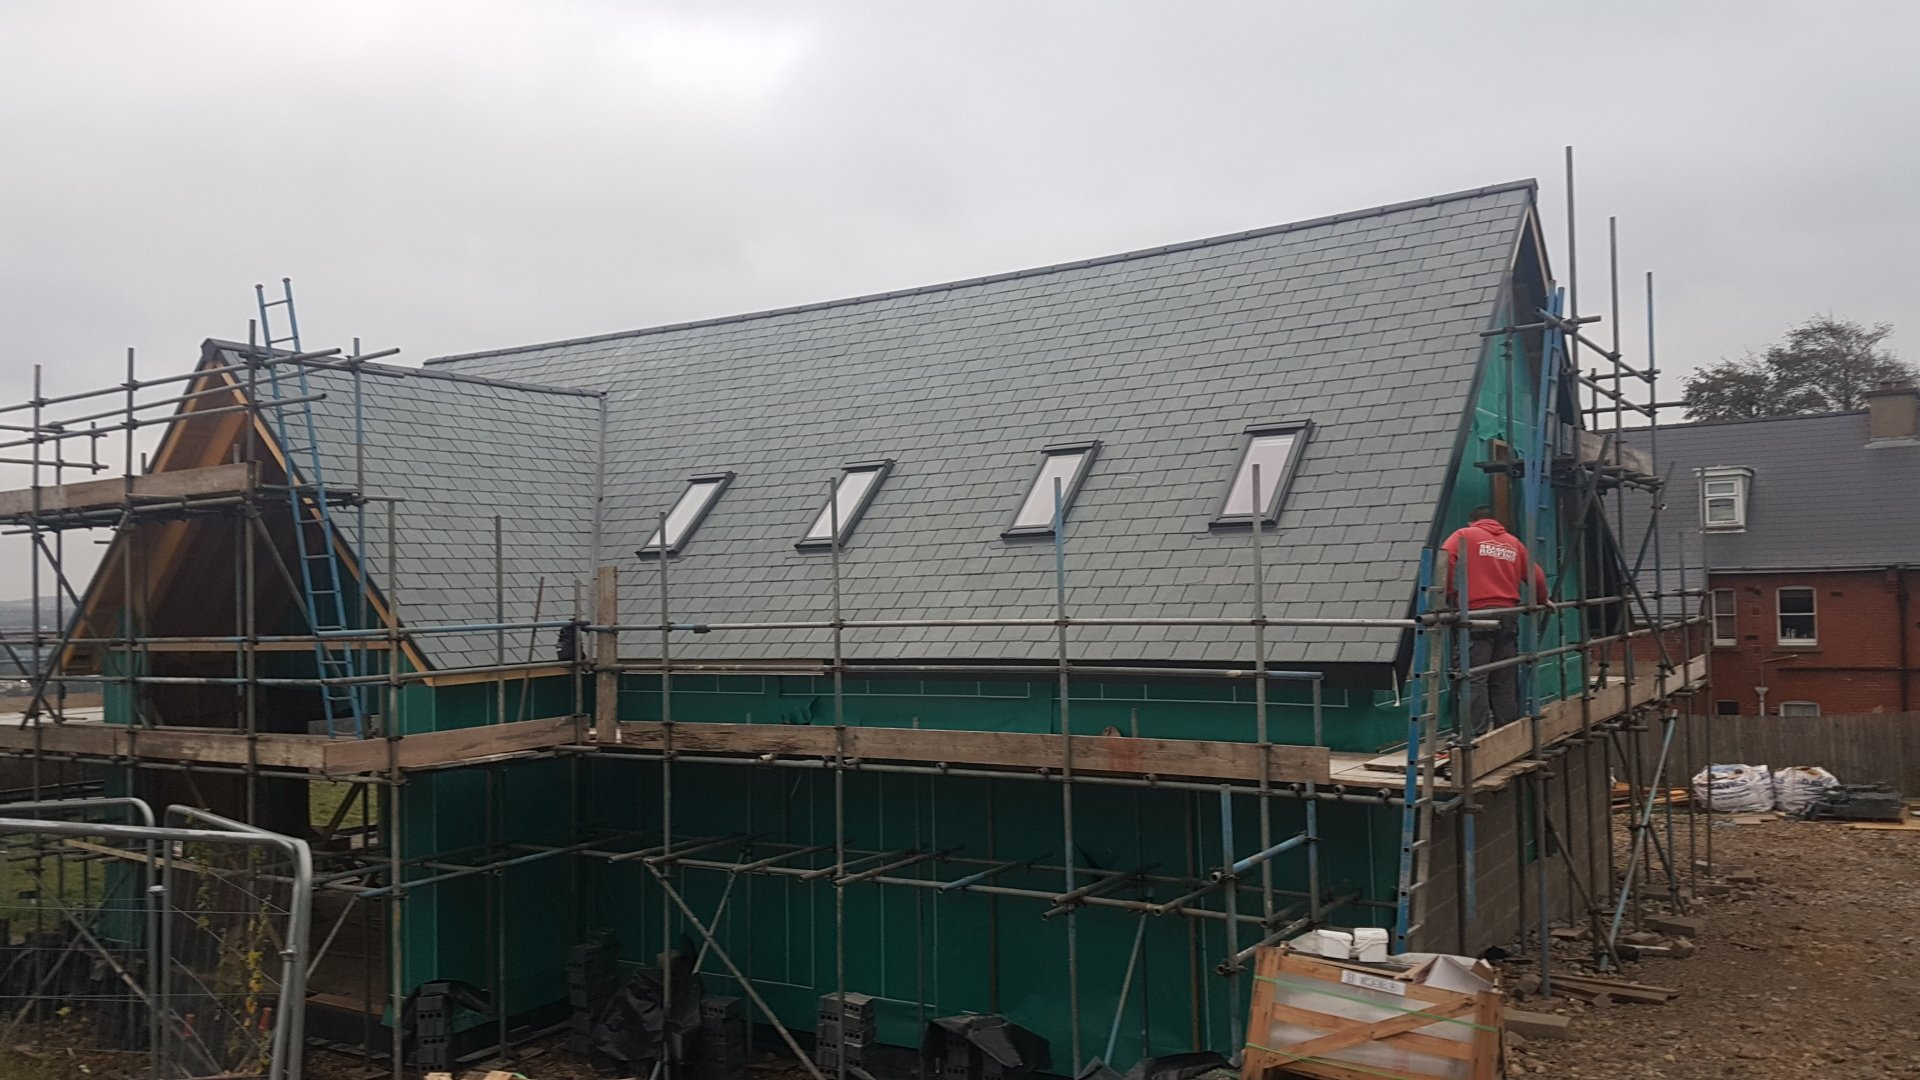 Domestic And Commercial Roofing By Seasons Roofing